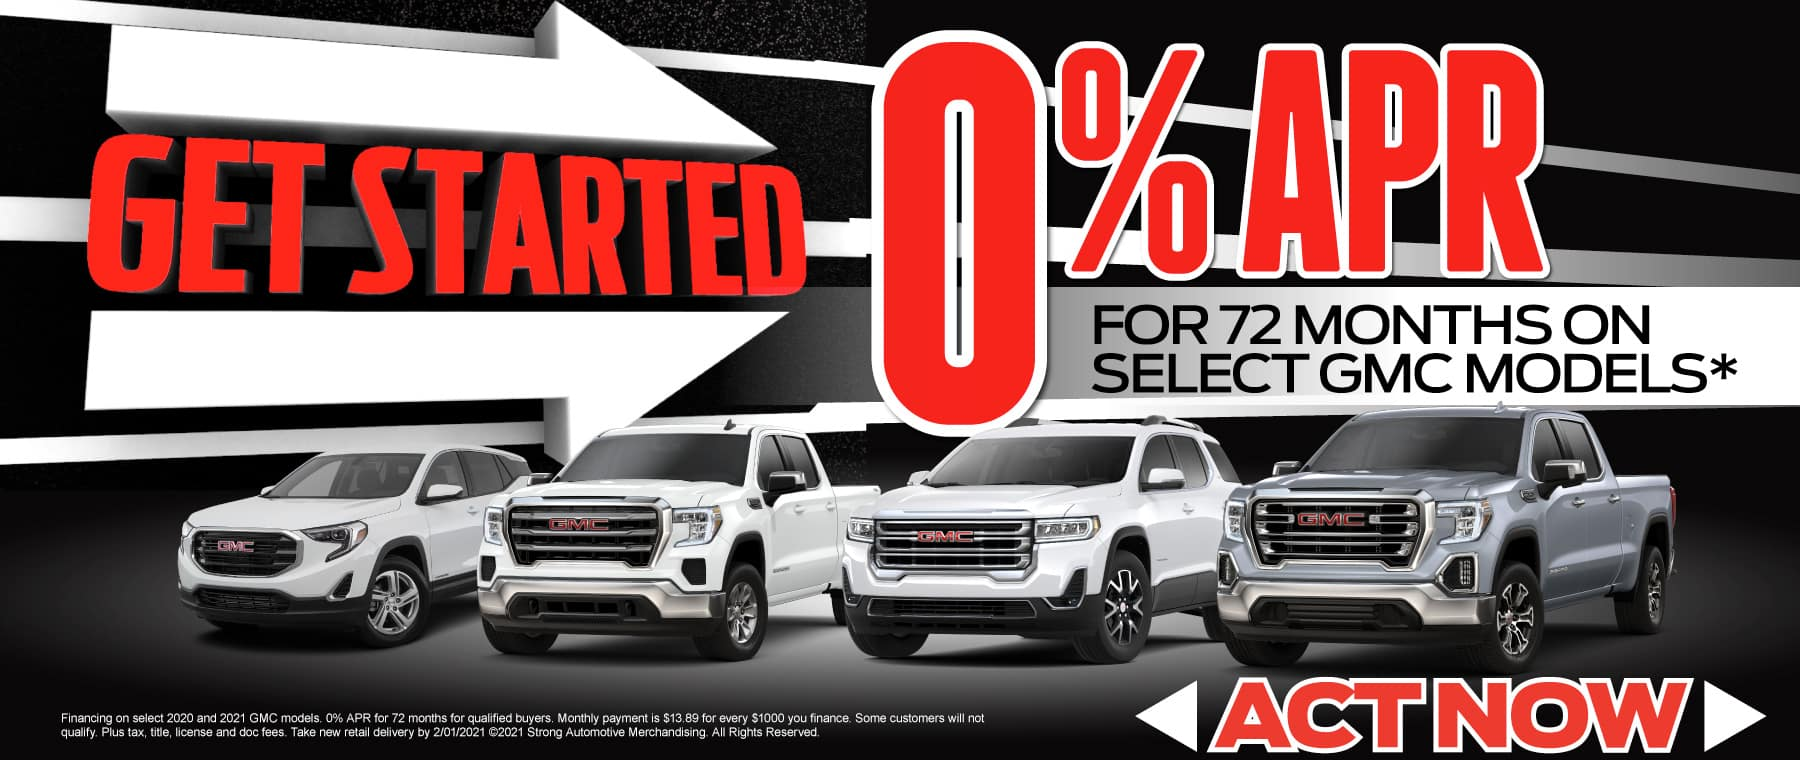 0% APR on Select GMC models - Act now